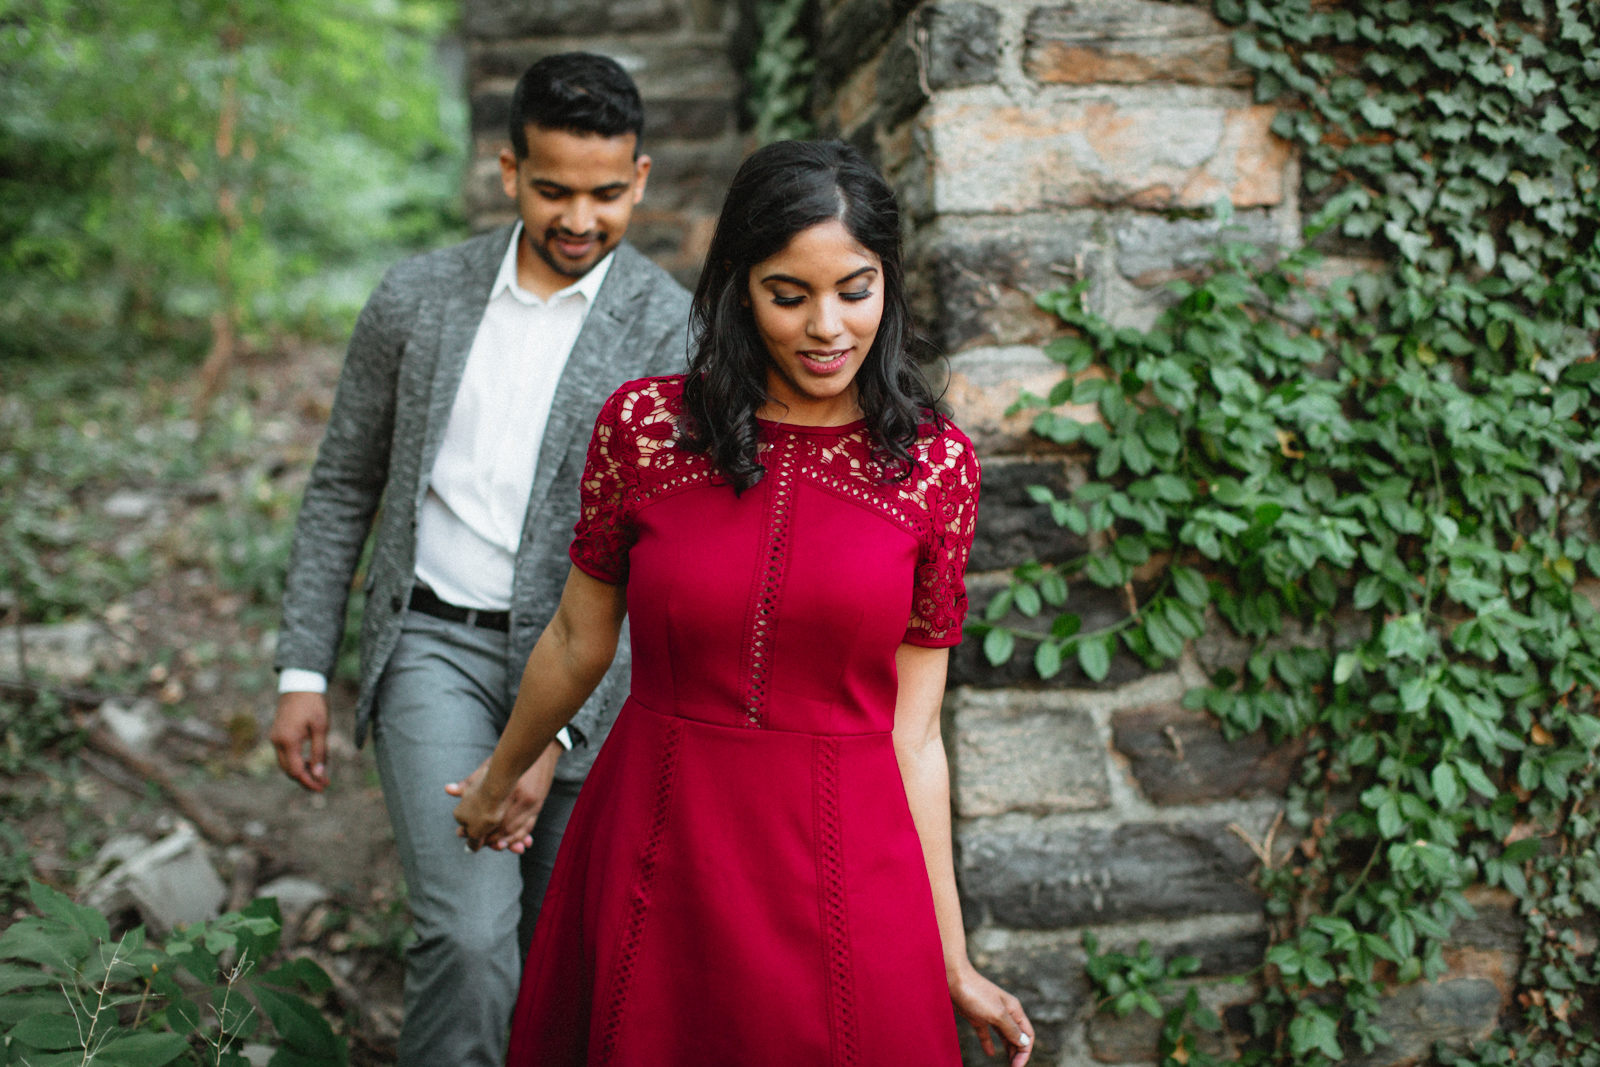 NYC Wedding Photography Fort Tryon Park Engagement NYC Wedding Photographer Boris Zaretsky _B2C3309.jpg